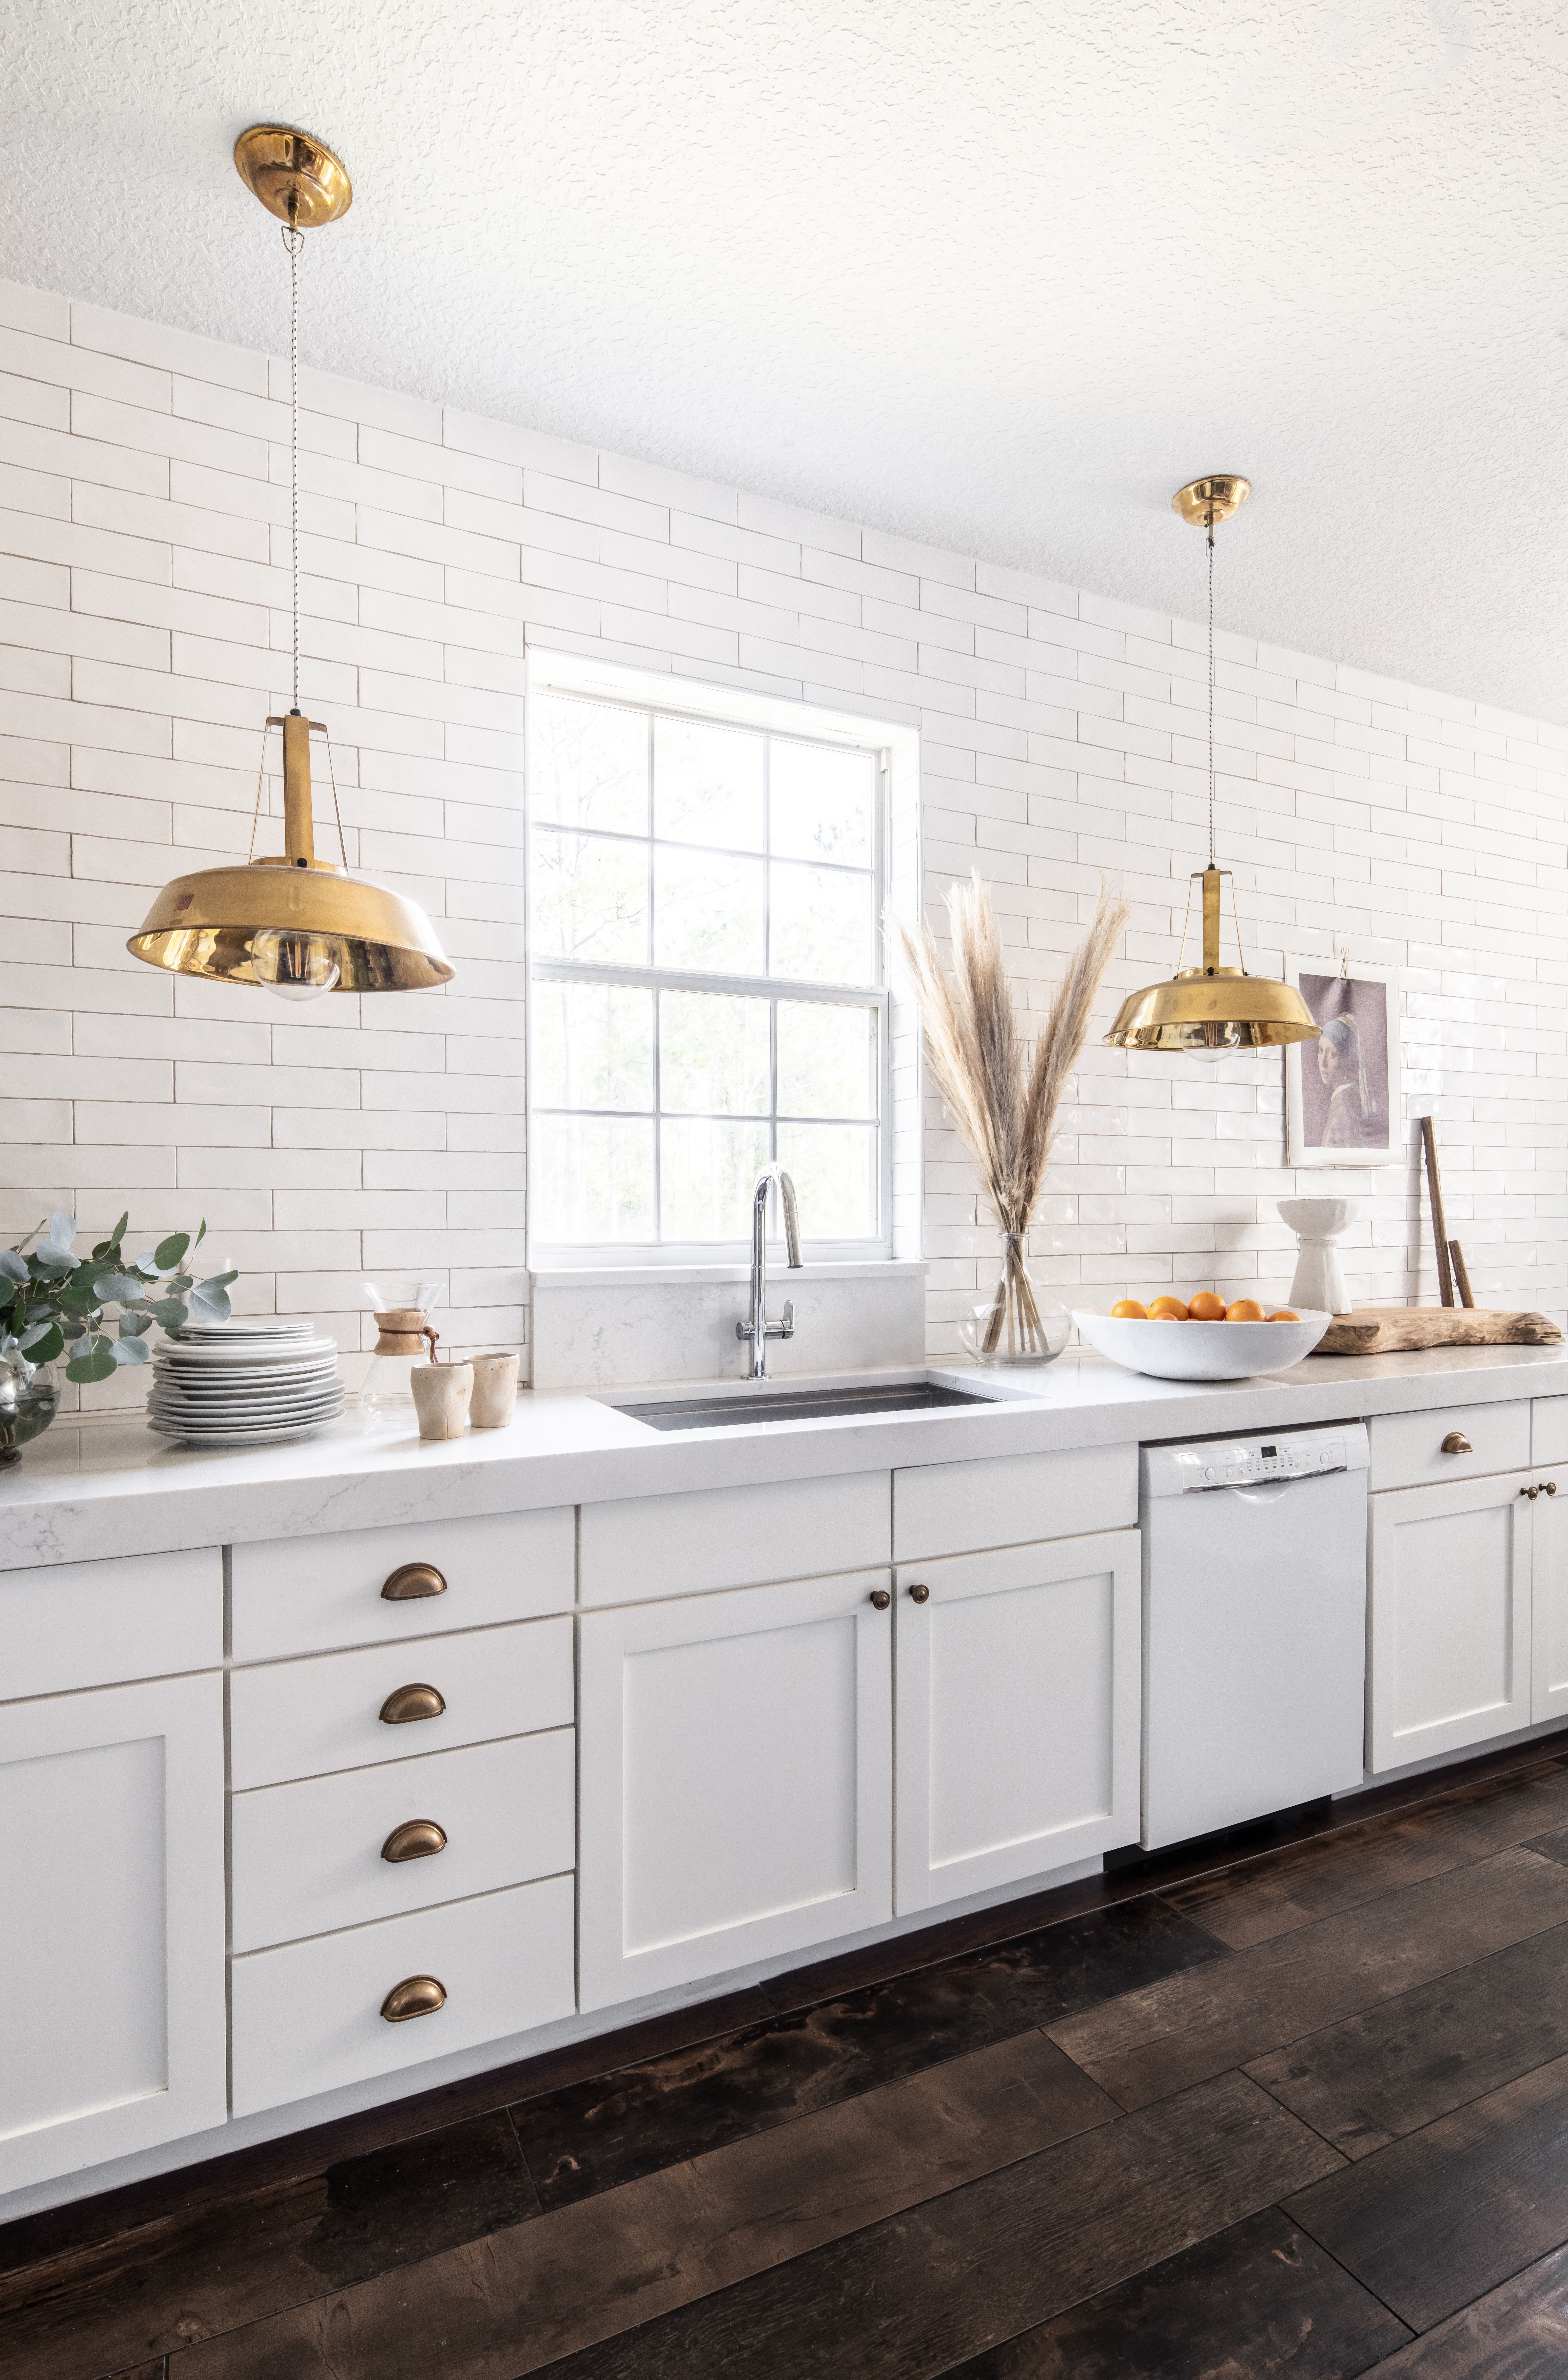 A Florida Designer Reinvents Her Kitchen By Removing The Upper Cabinets Kitchens Without Upper Cabinets Rustic Kitchen Kitchen Remodel